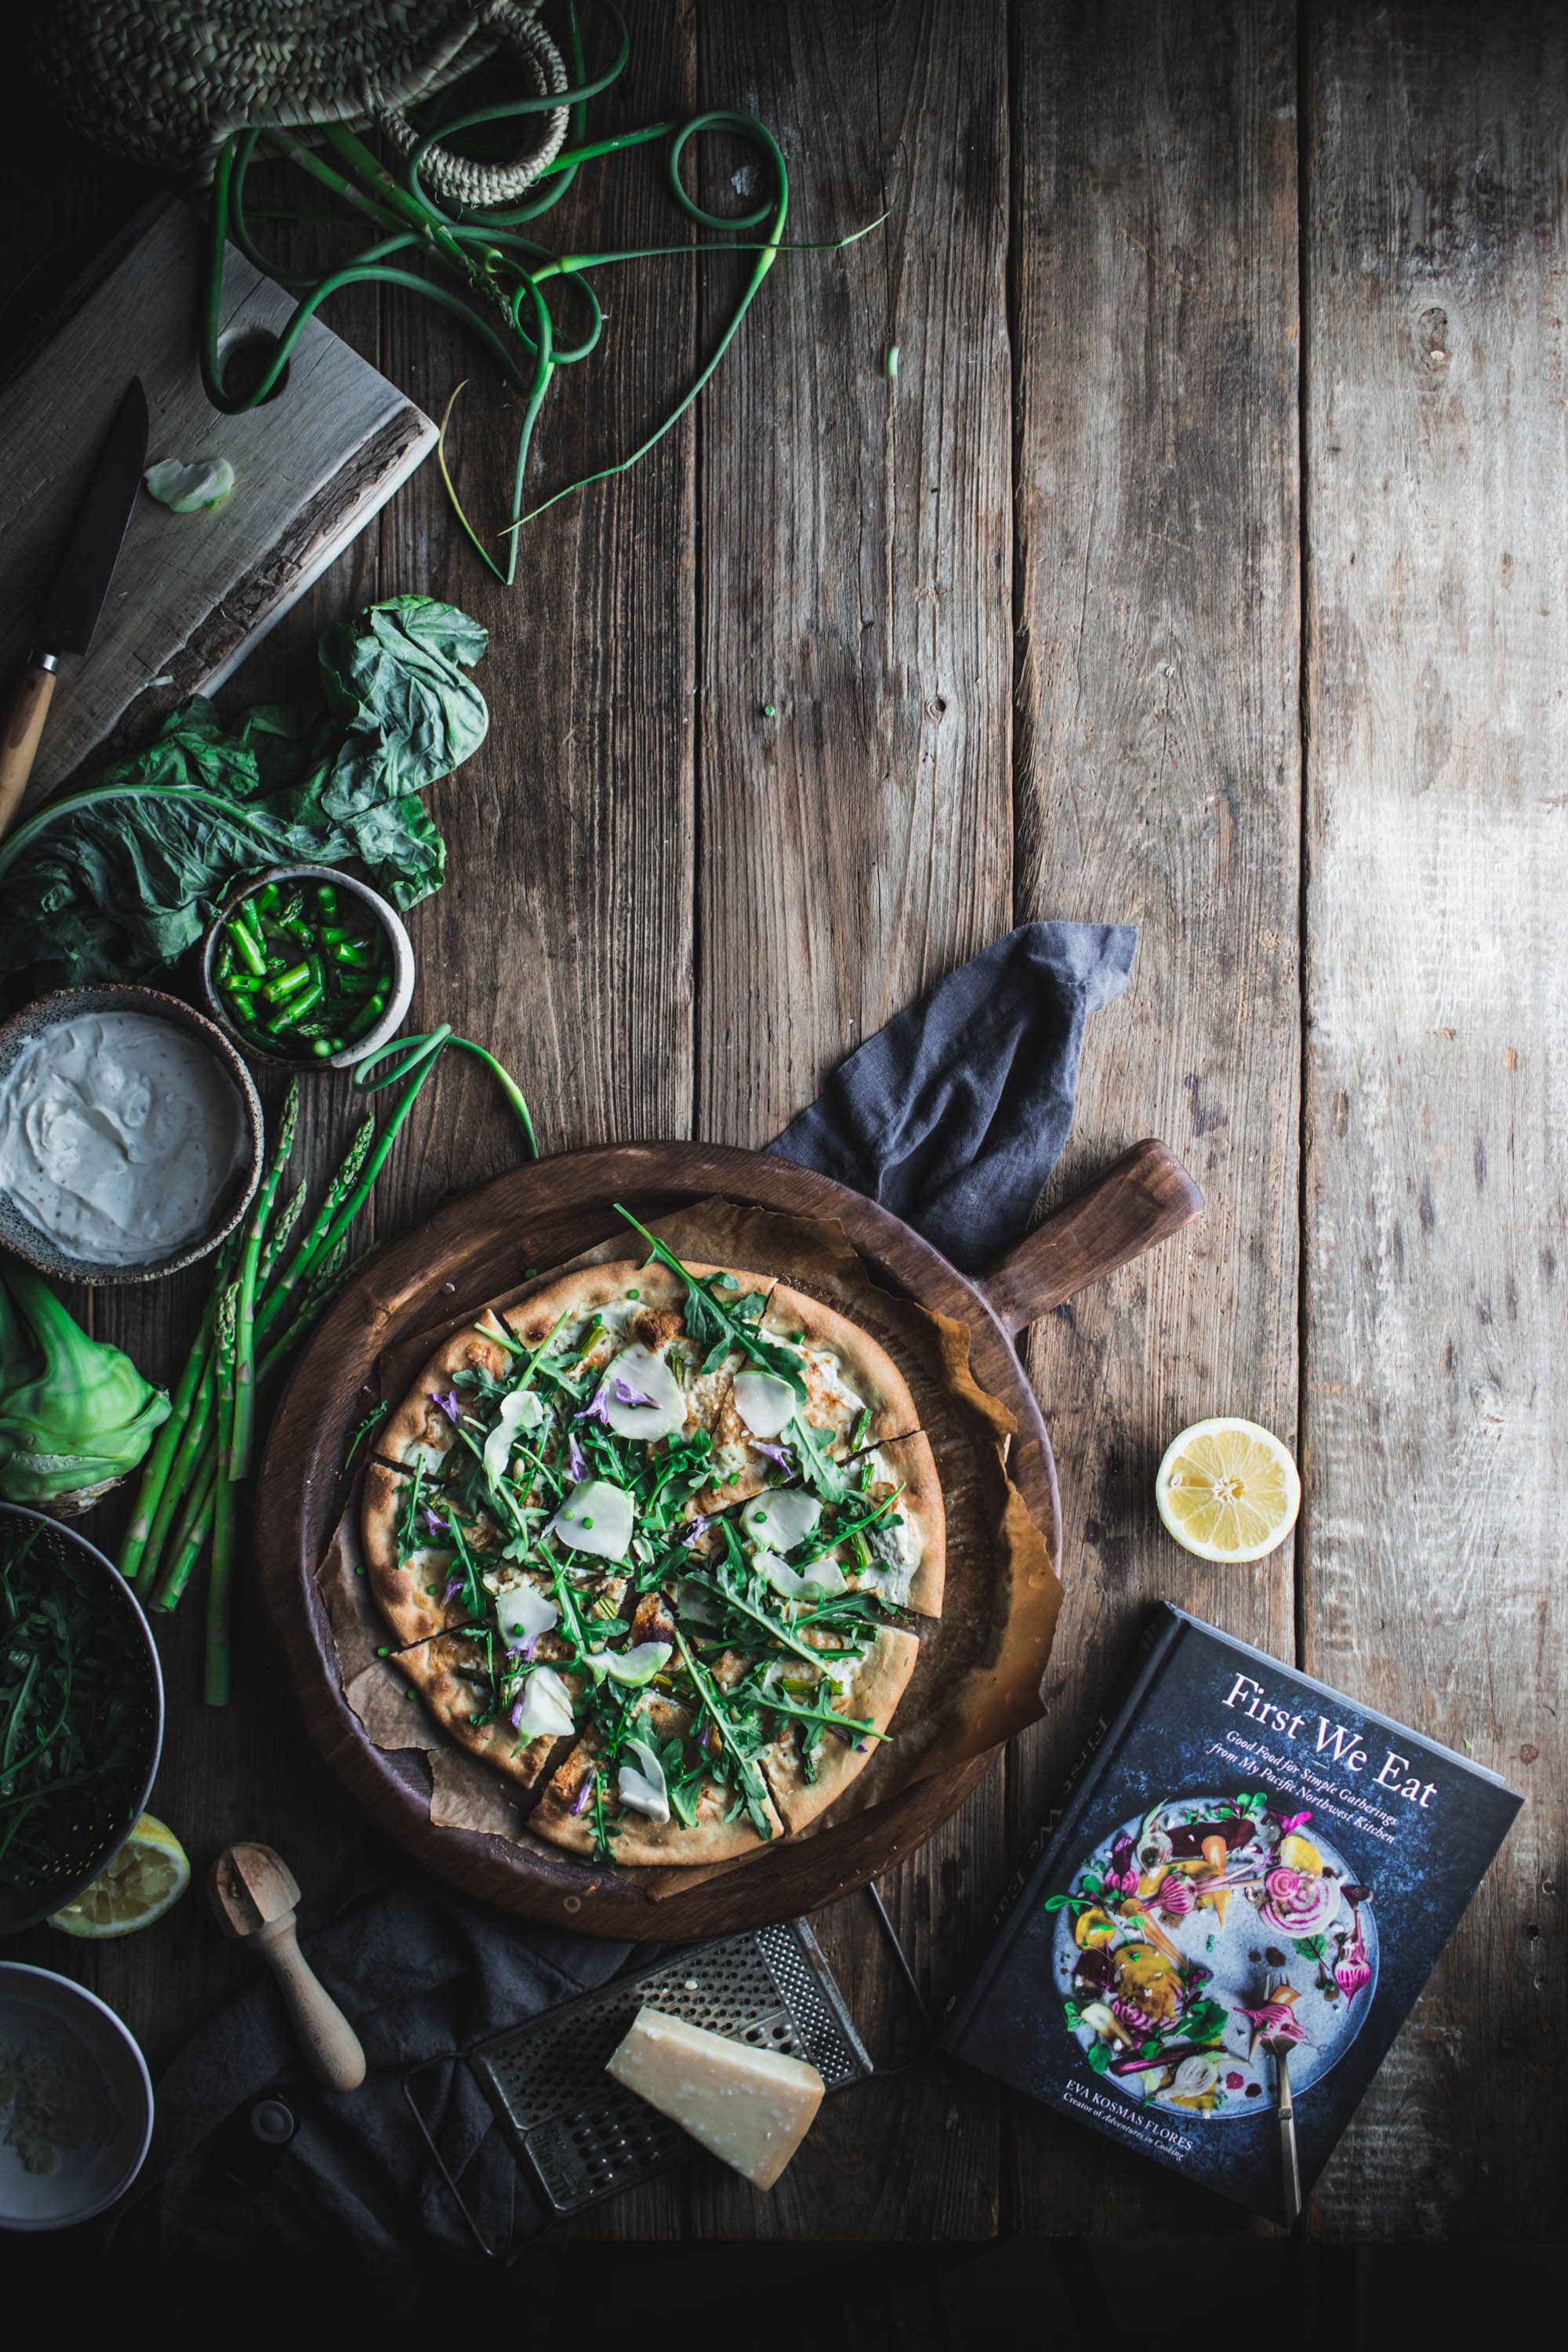 Pizza, Bianca, spring, Asparagus, garlic, white, sauce, ricotta, yogurt, dill, kohlrabi, Chevre, goat's cheese, First We Eat, Cookbook